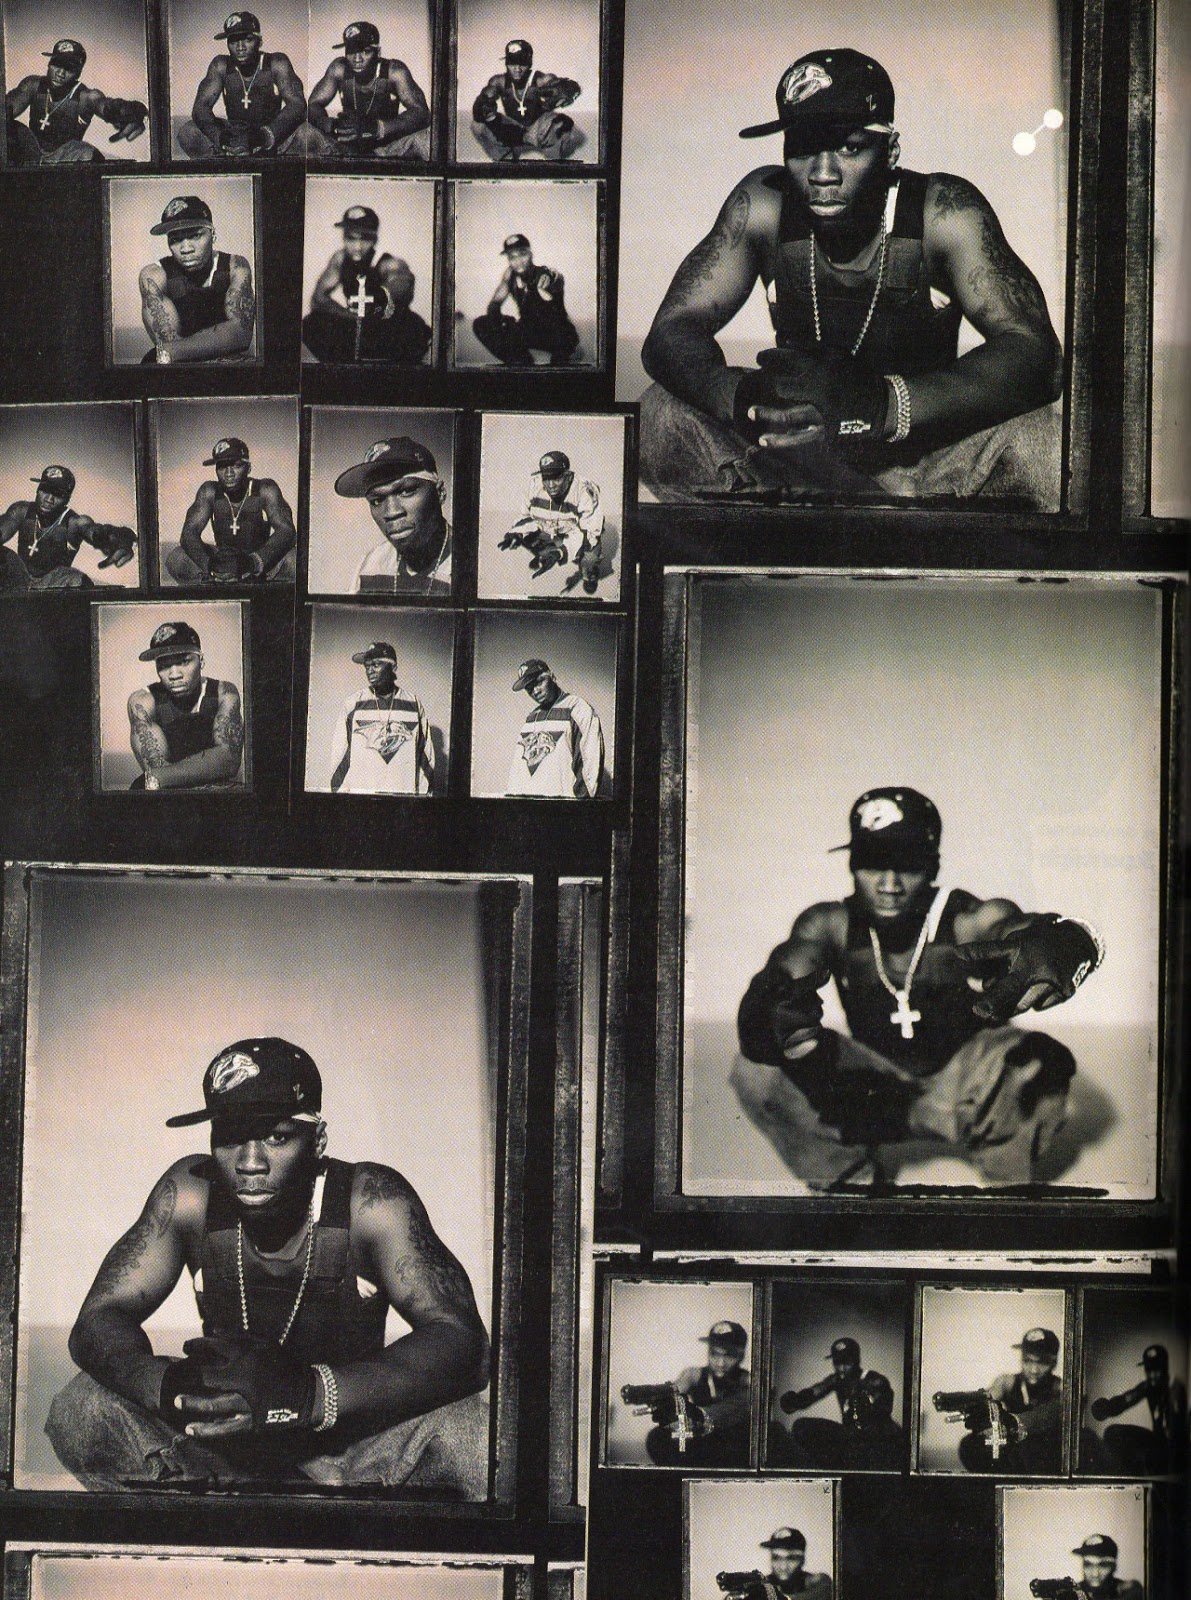 50 Cent Press Pics Negatives